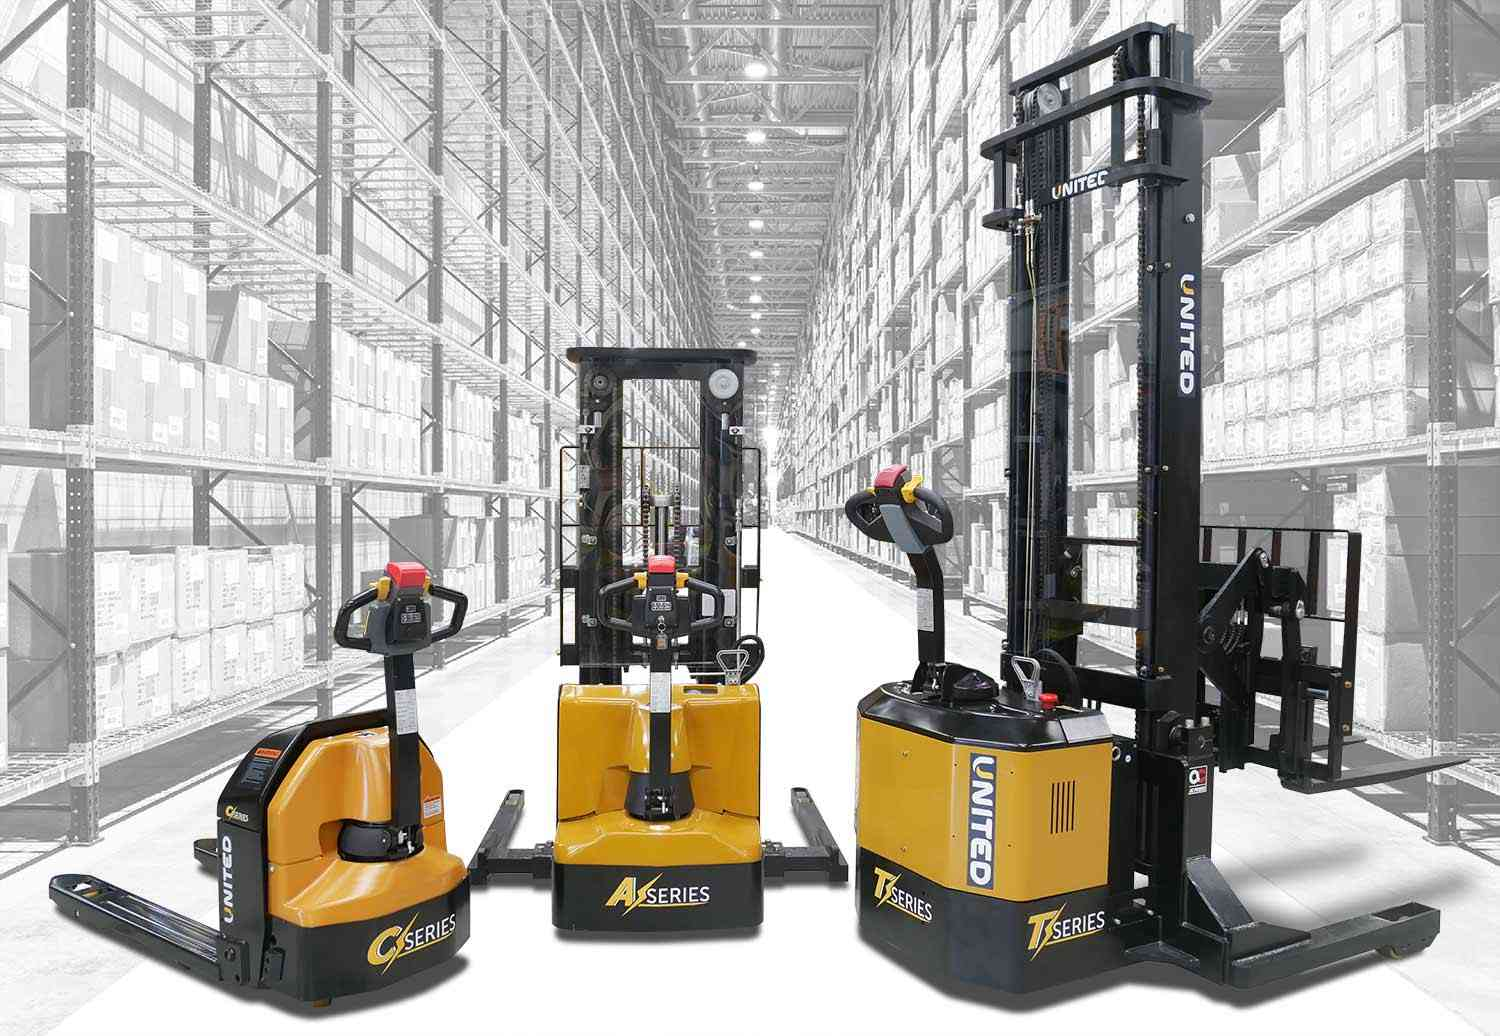 United lift trucks